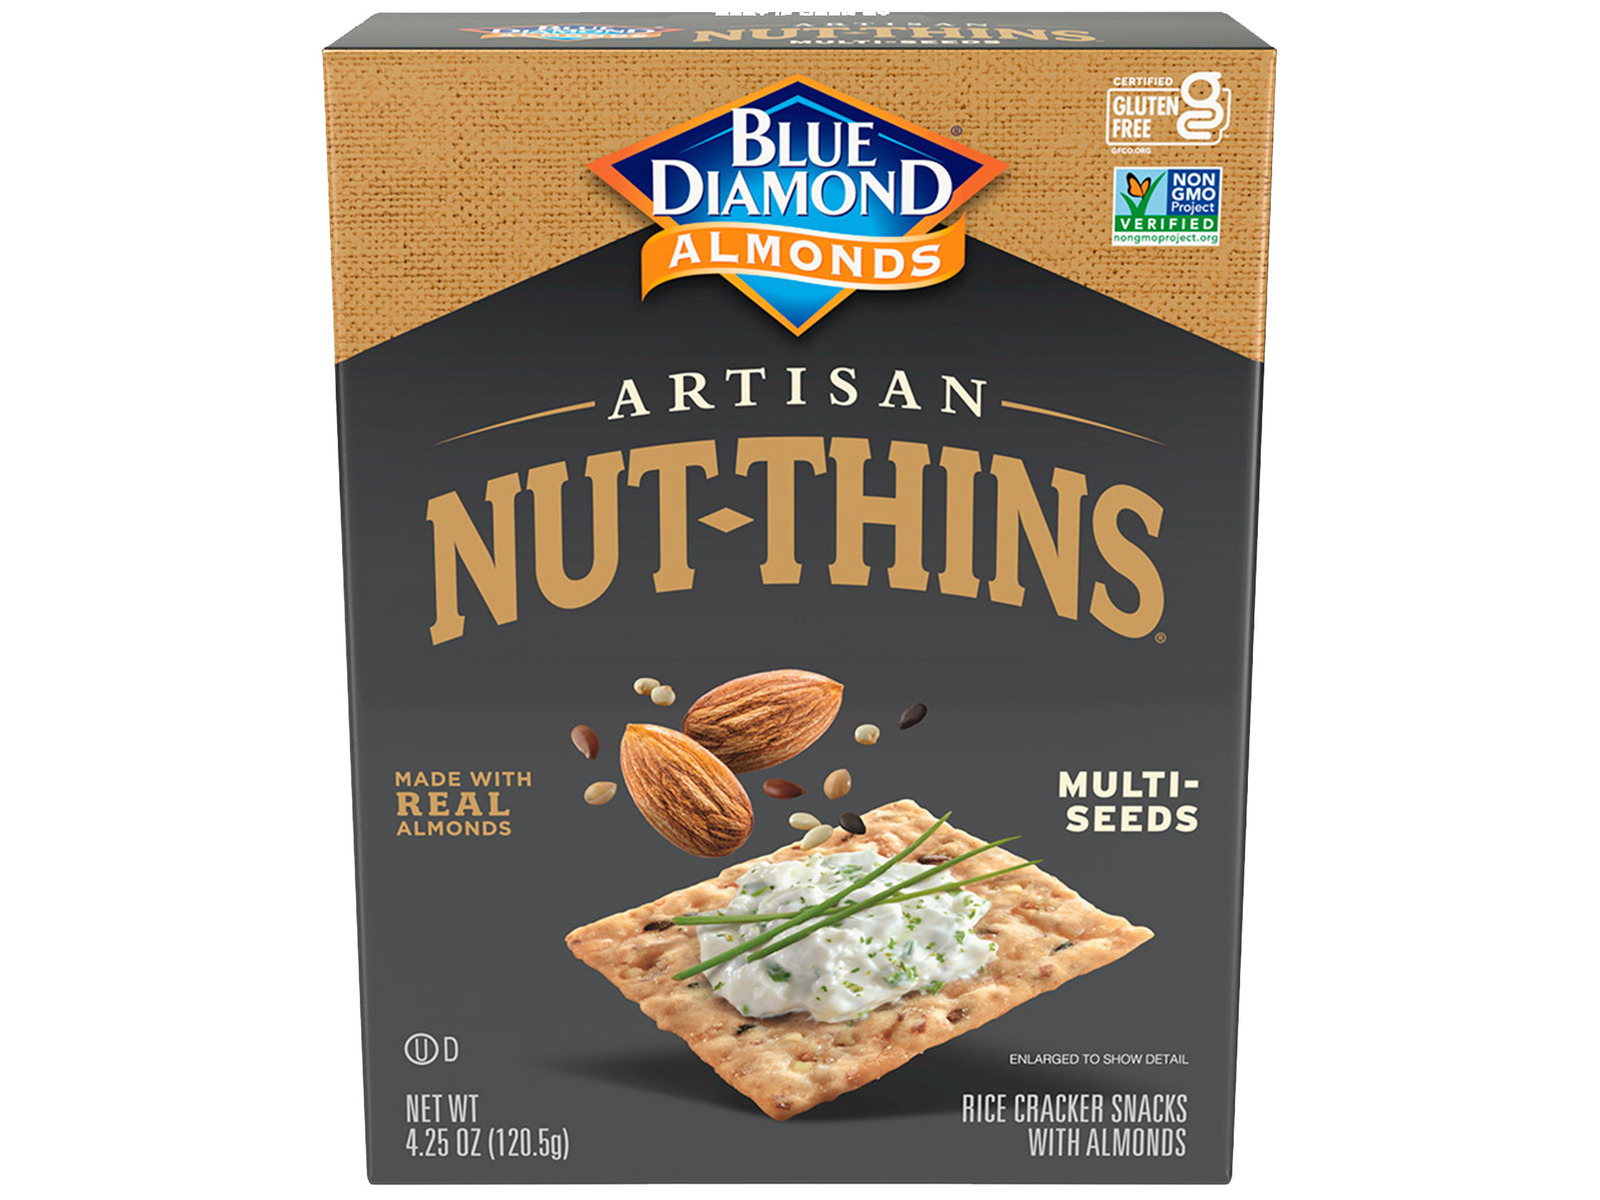 Multi-seed Nut-Thins